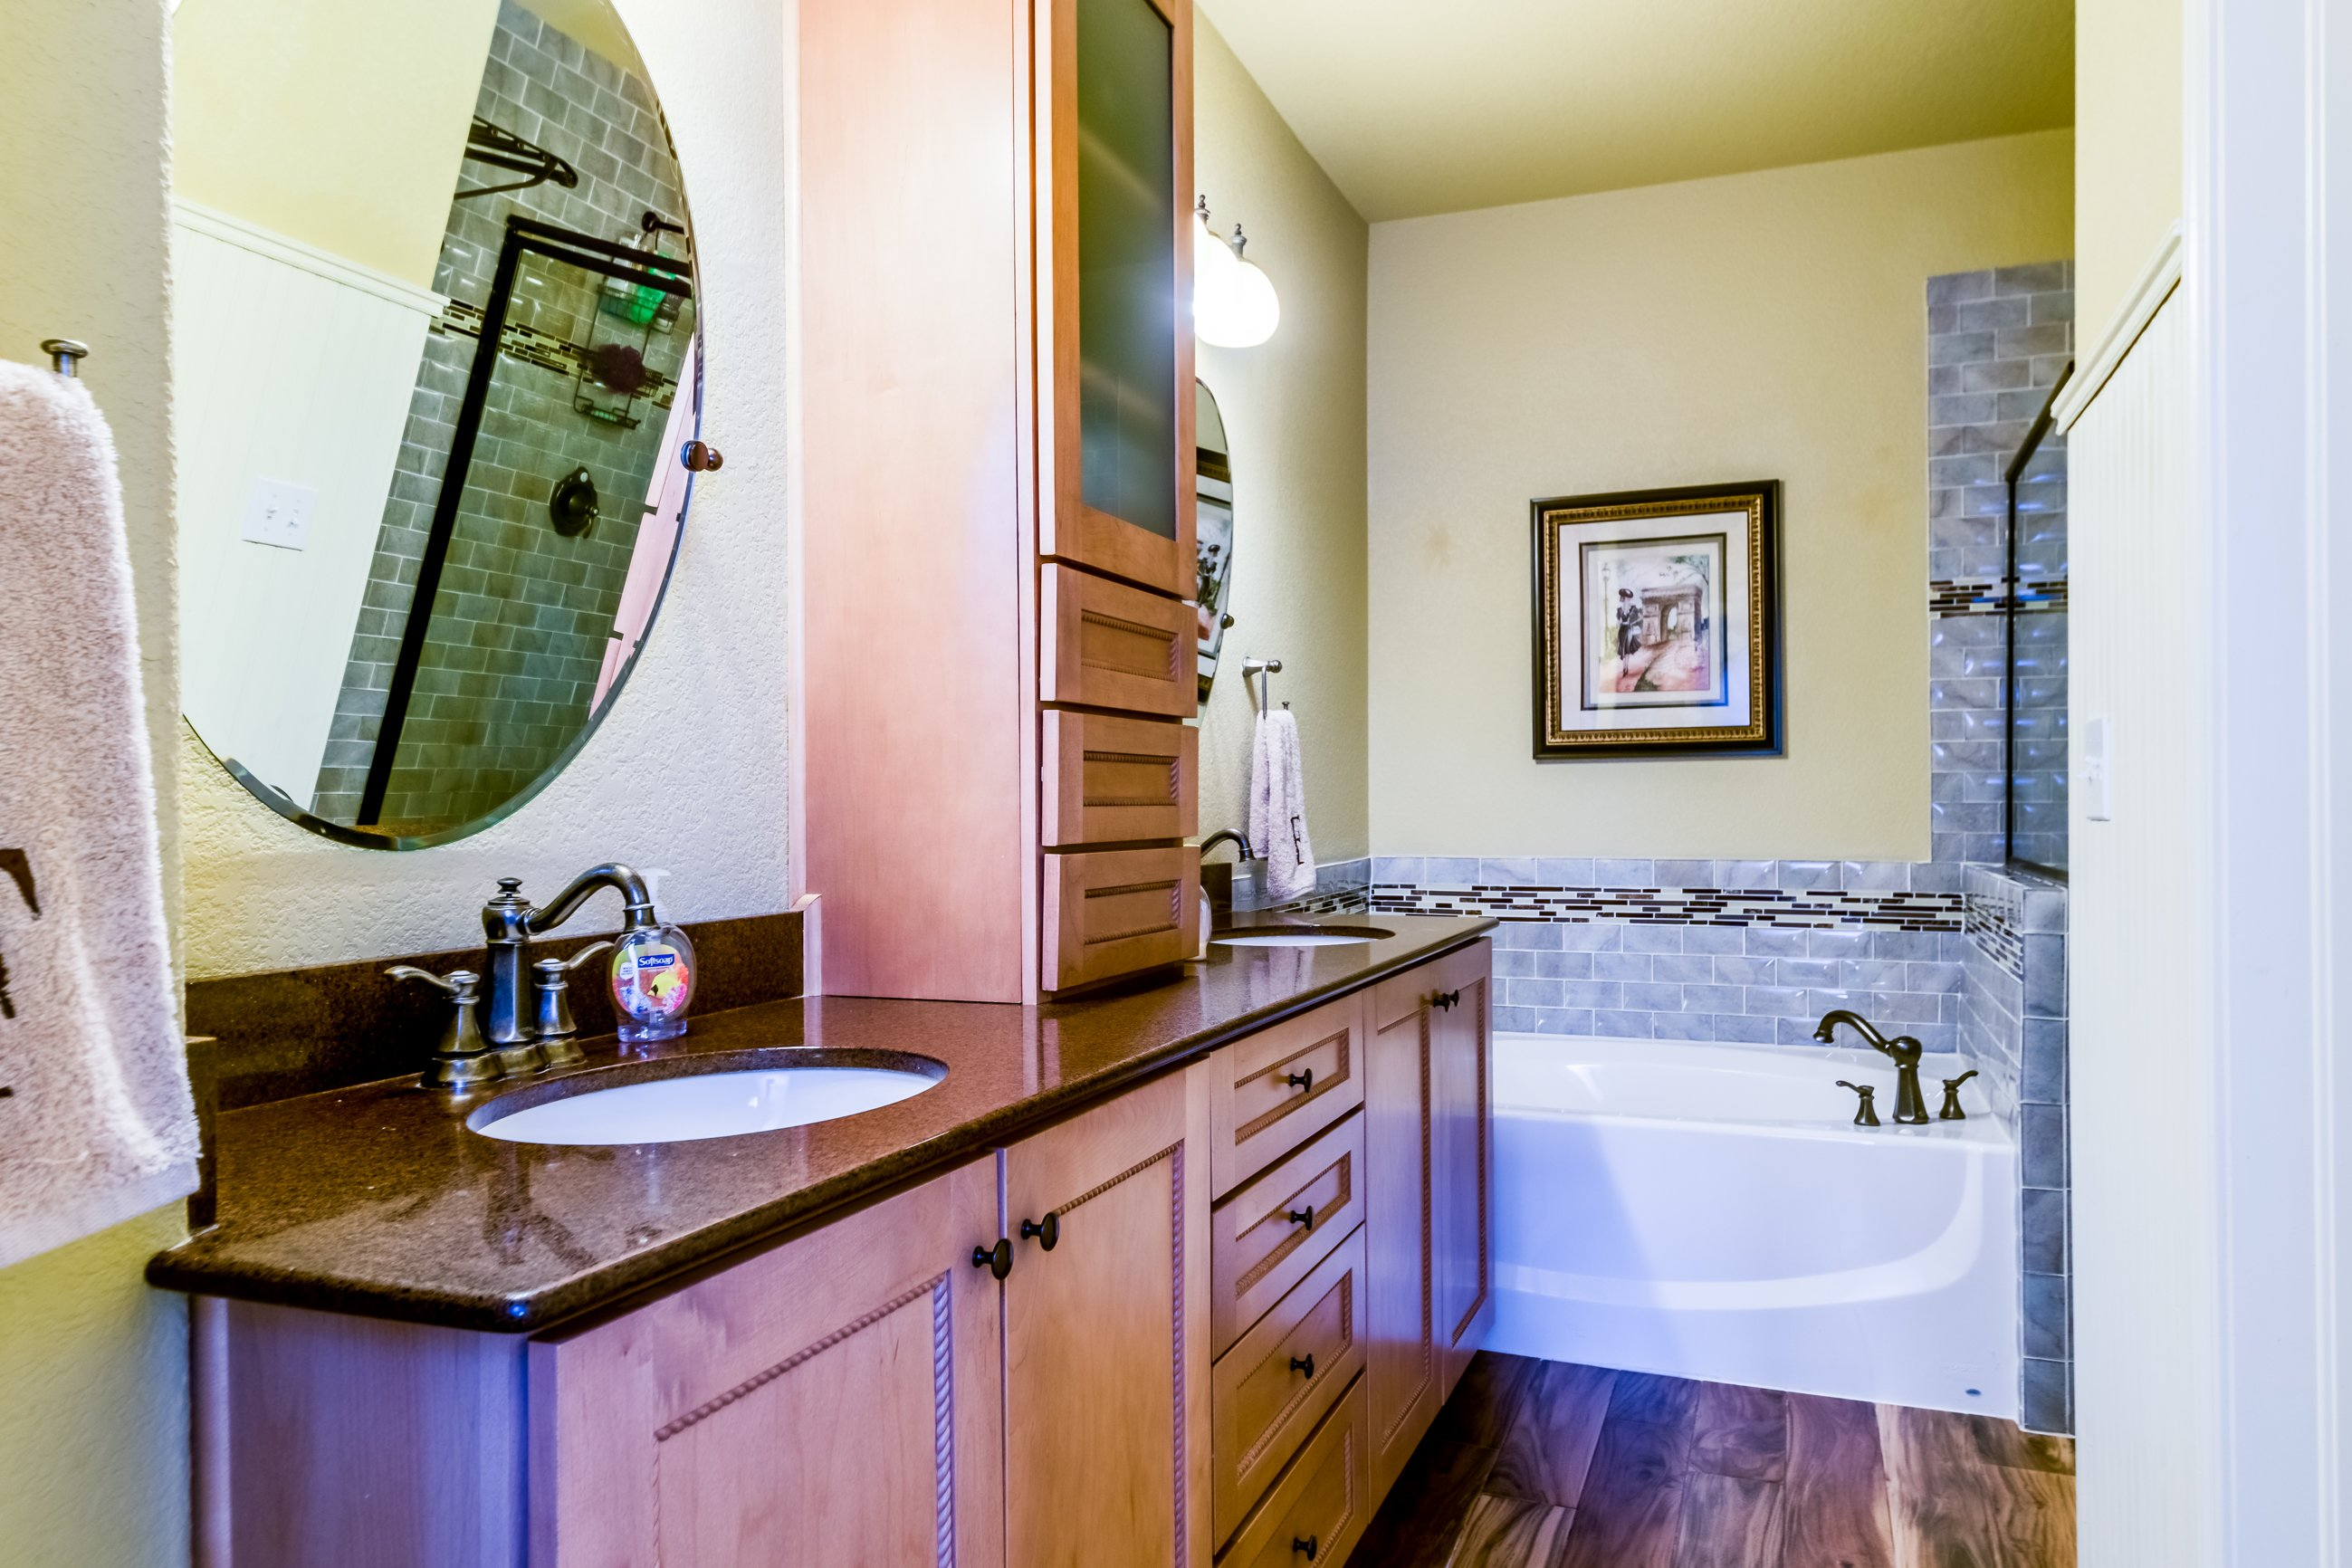 Gold Hill Mesa condo for sale, picture of stunning bathroom